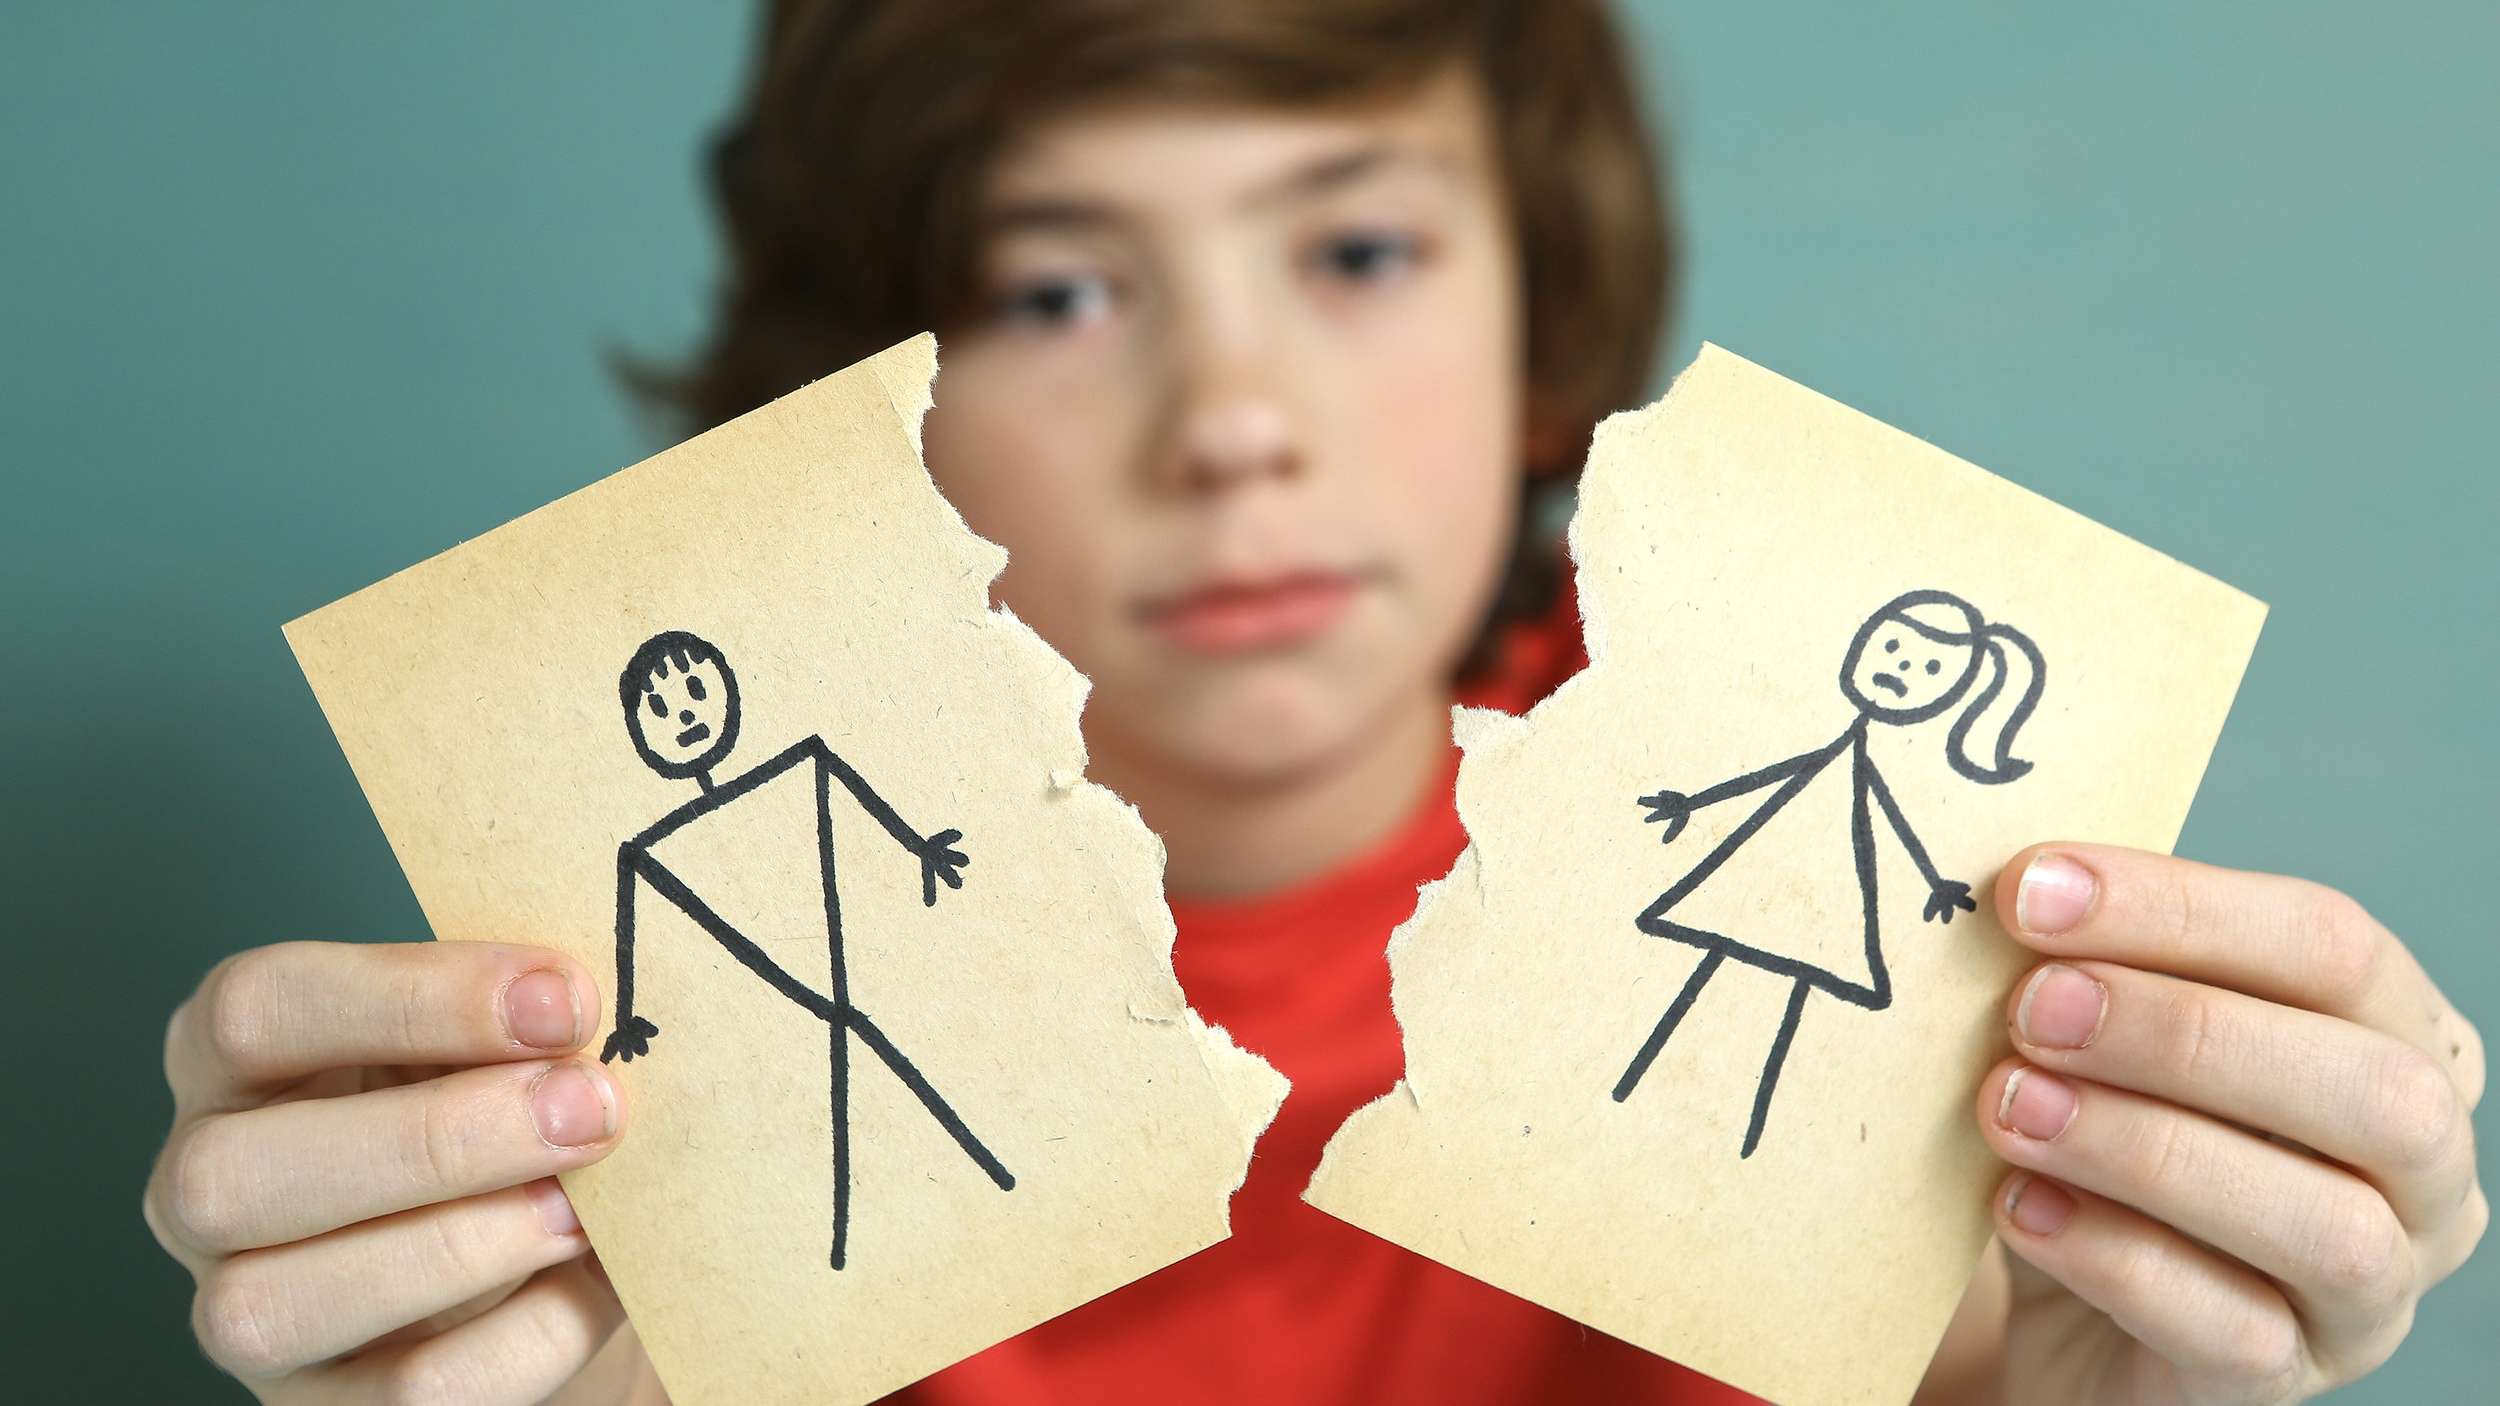 4_ShSt_Custody_stock-photo-sad-preteen-boy-unhappy-about-parents-divorce-hold-man-and-woman-paper-drawing-torn-apart-516537268.jpg